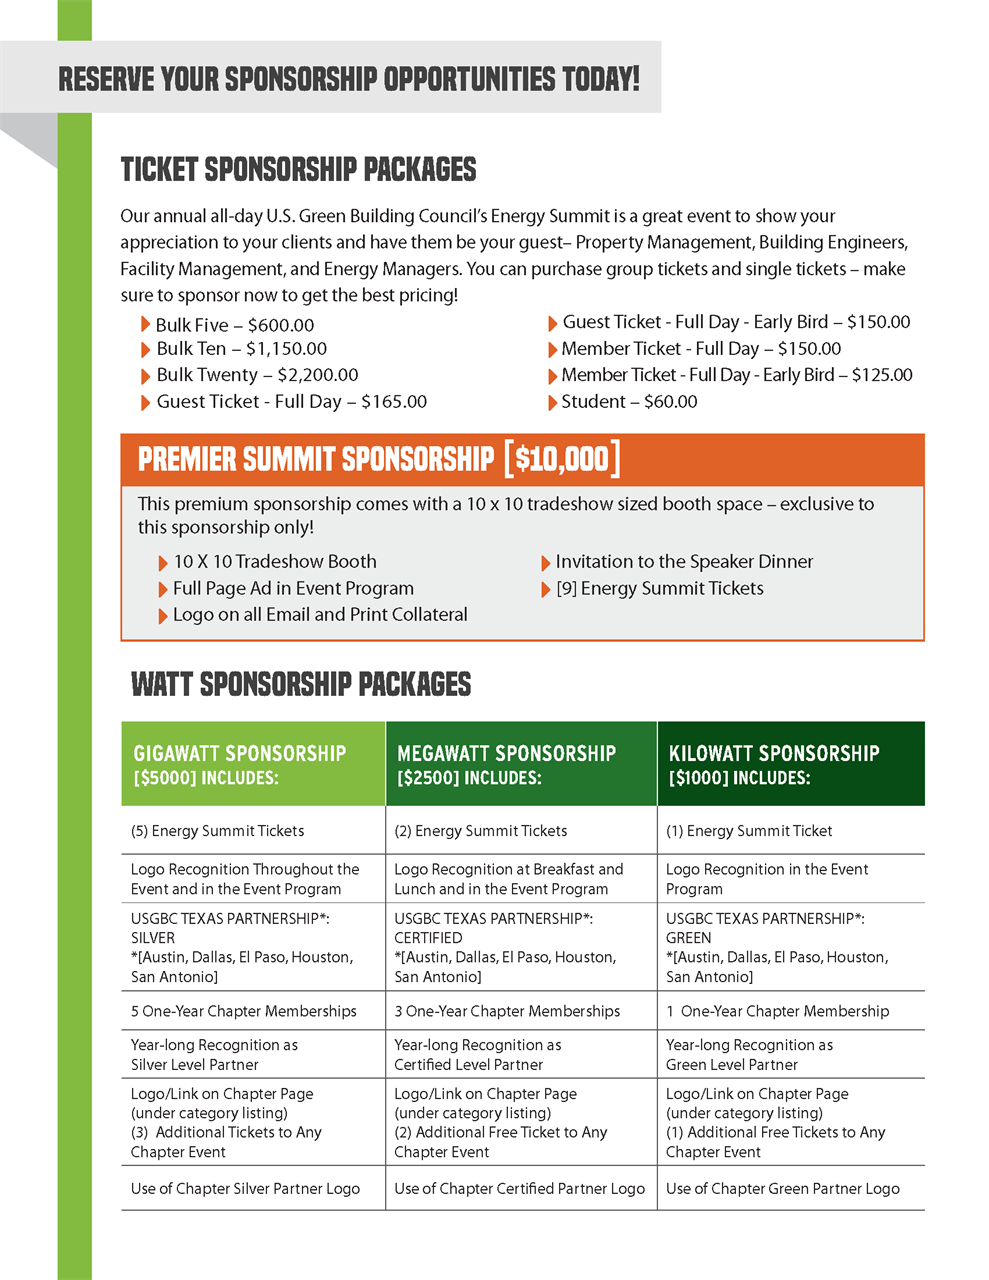 USGBC Texas - 2019 USGBC Texas Energy Summit Sponsorship